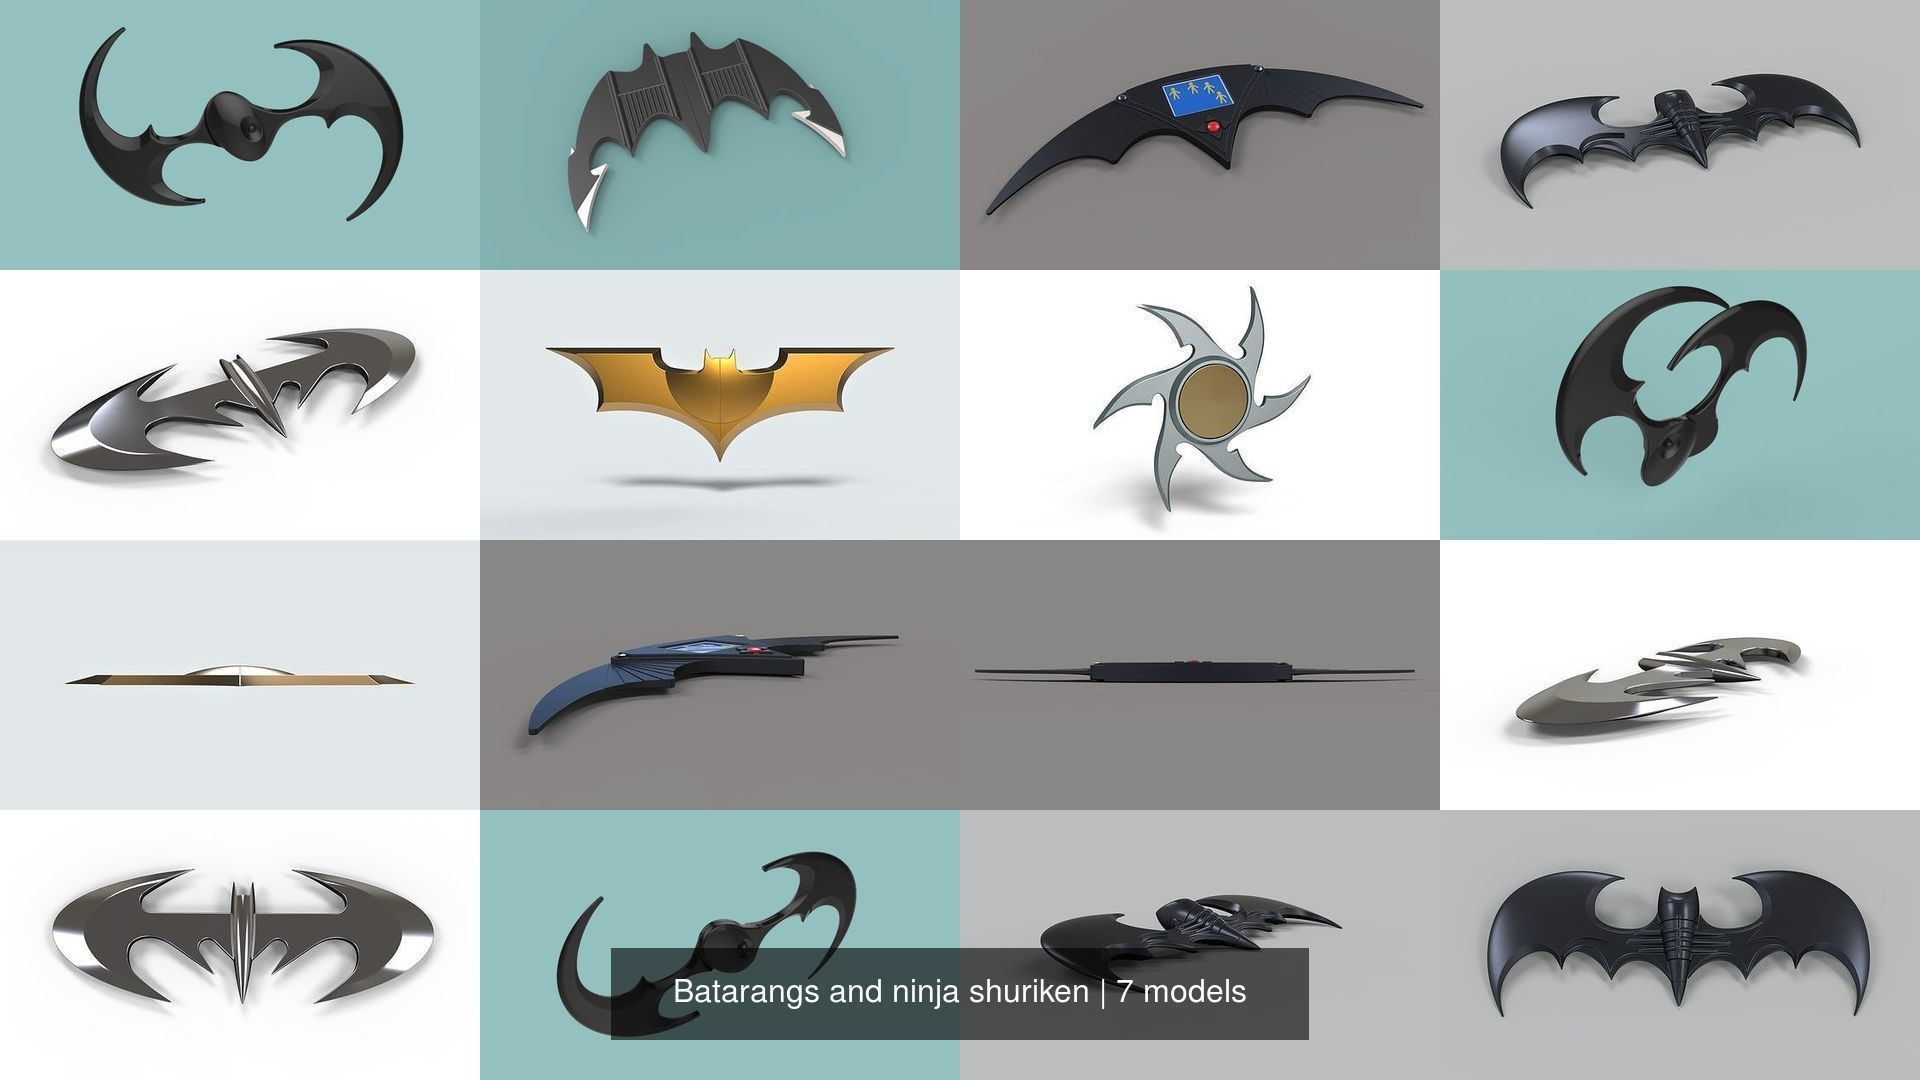 Batarangs and ninja shuriken